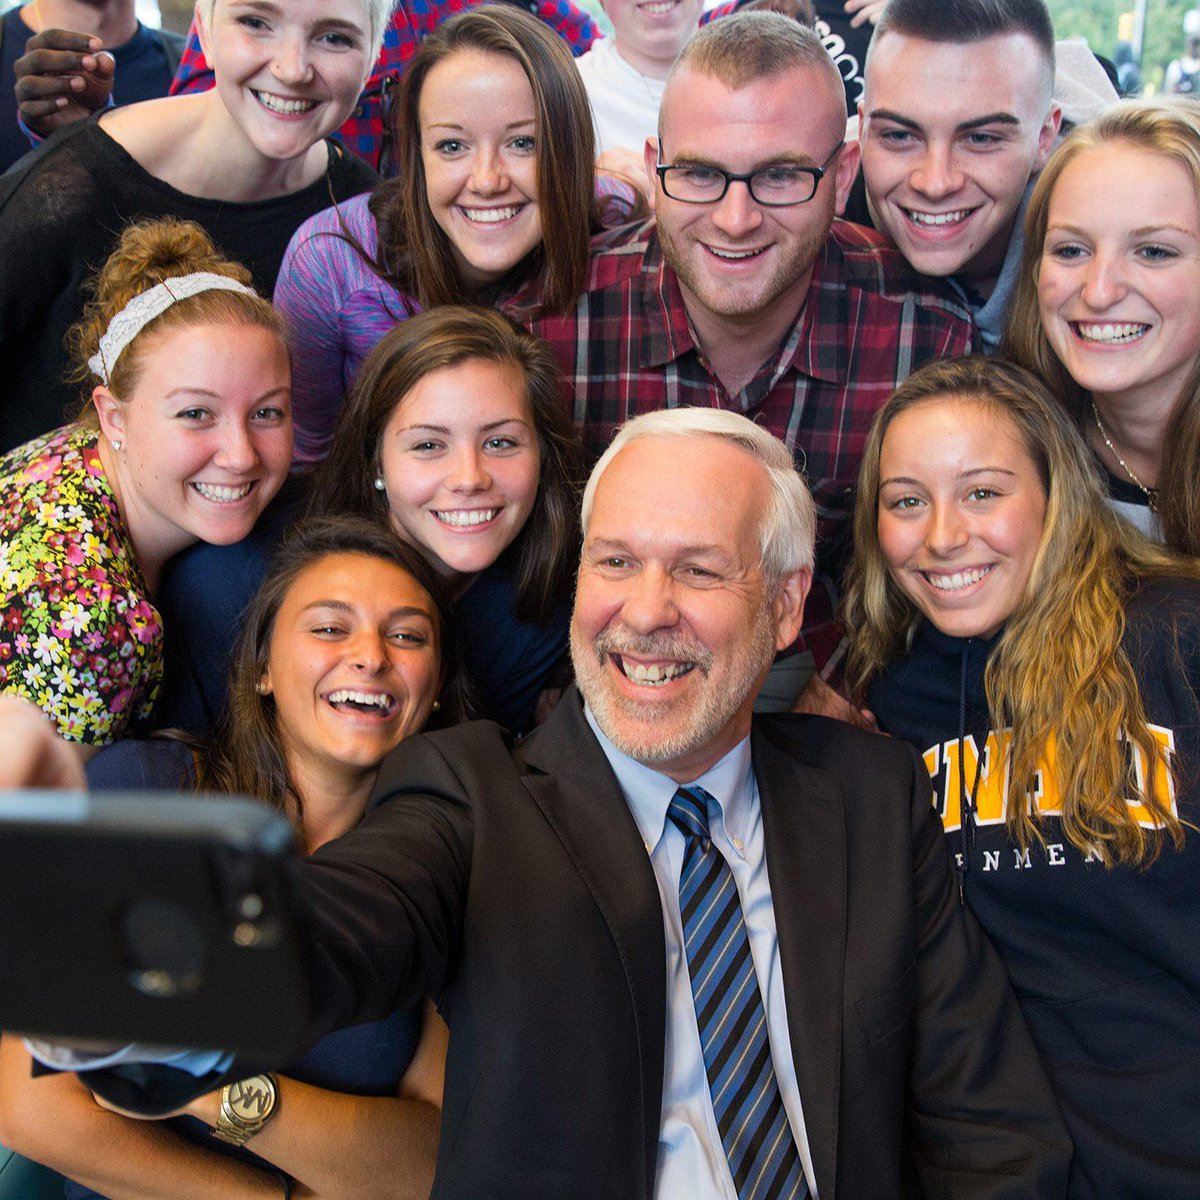 Congrats @snhuprez for being named one of America's 10 Most Innovative College Presidents! http://t.co/yyVtlr3L9o http://t.co/XAfUPqtnkF